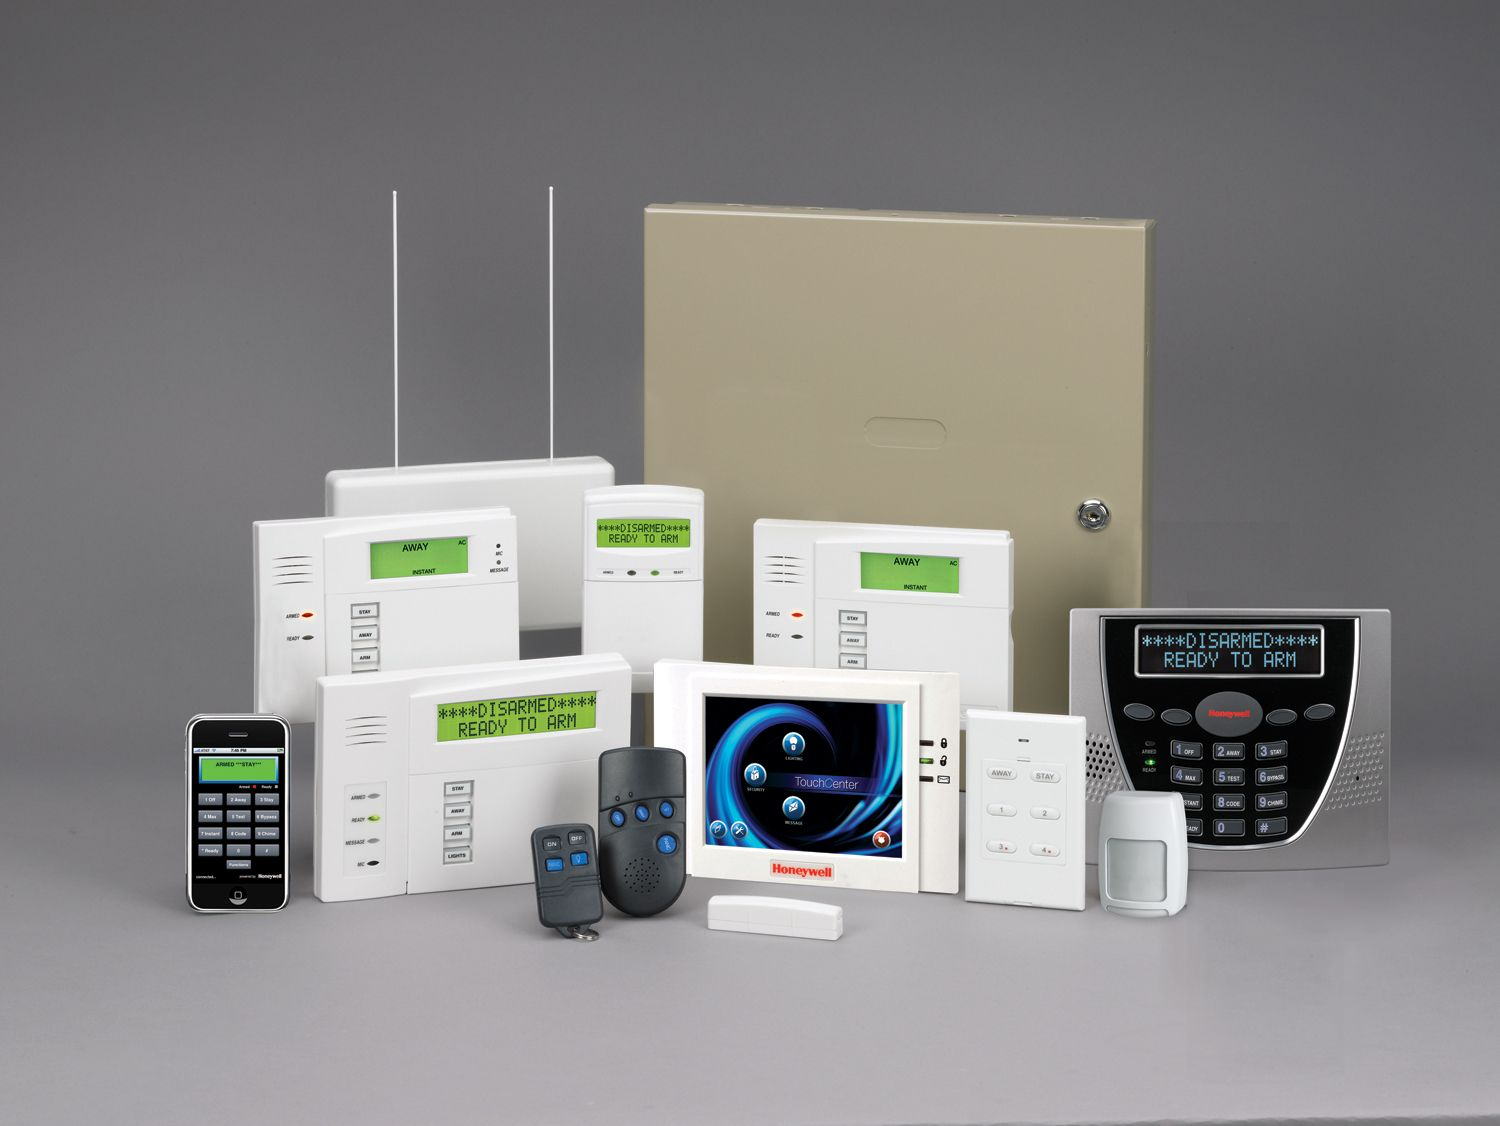 Alarms Boston Your Alarm System Source Home Security Camera Systems Wireless Home Security Systems Home Security Systems